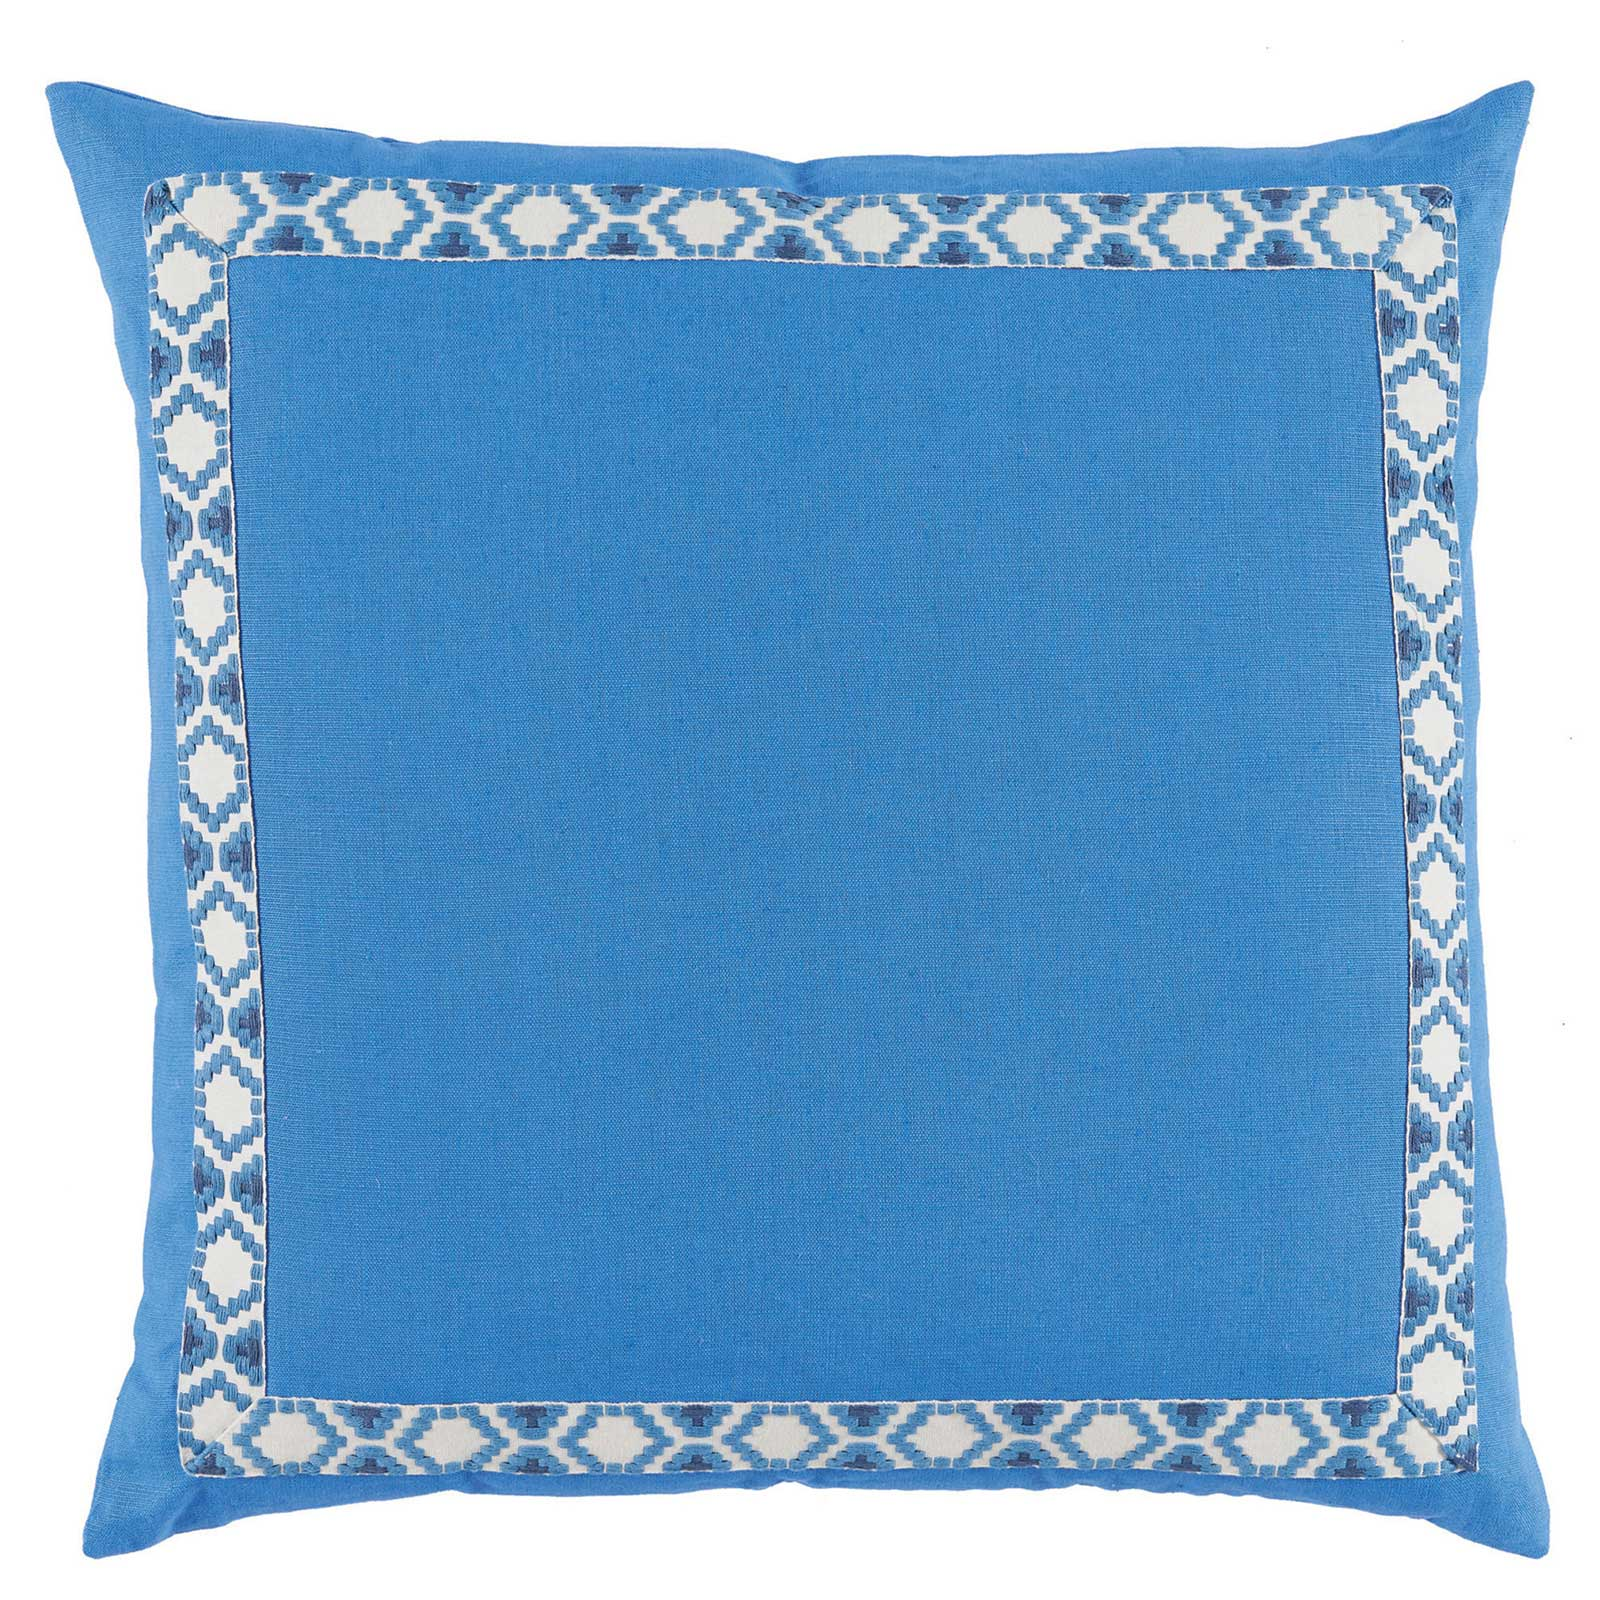 Kaia Global Bright Blue Linen Trim Band Pillow - 24x24